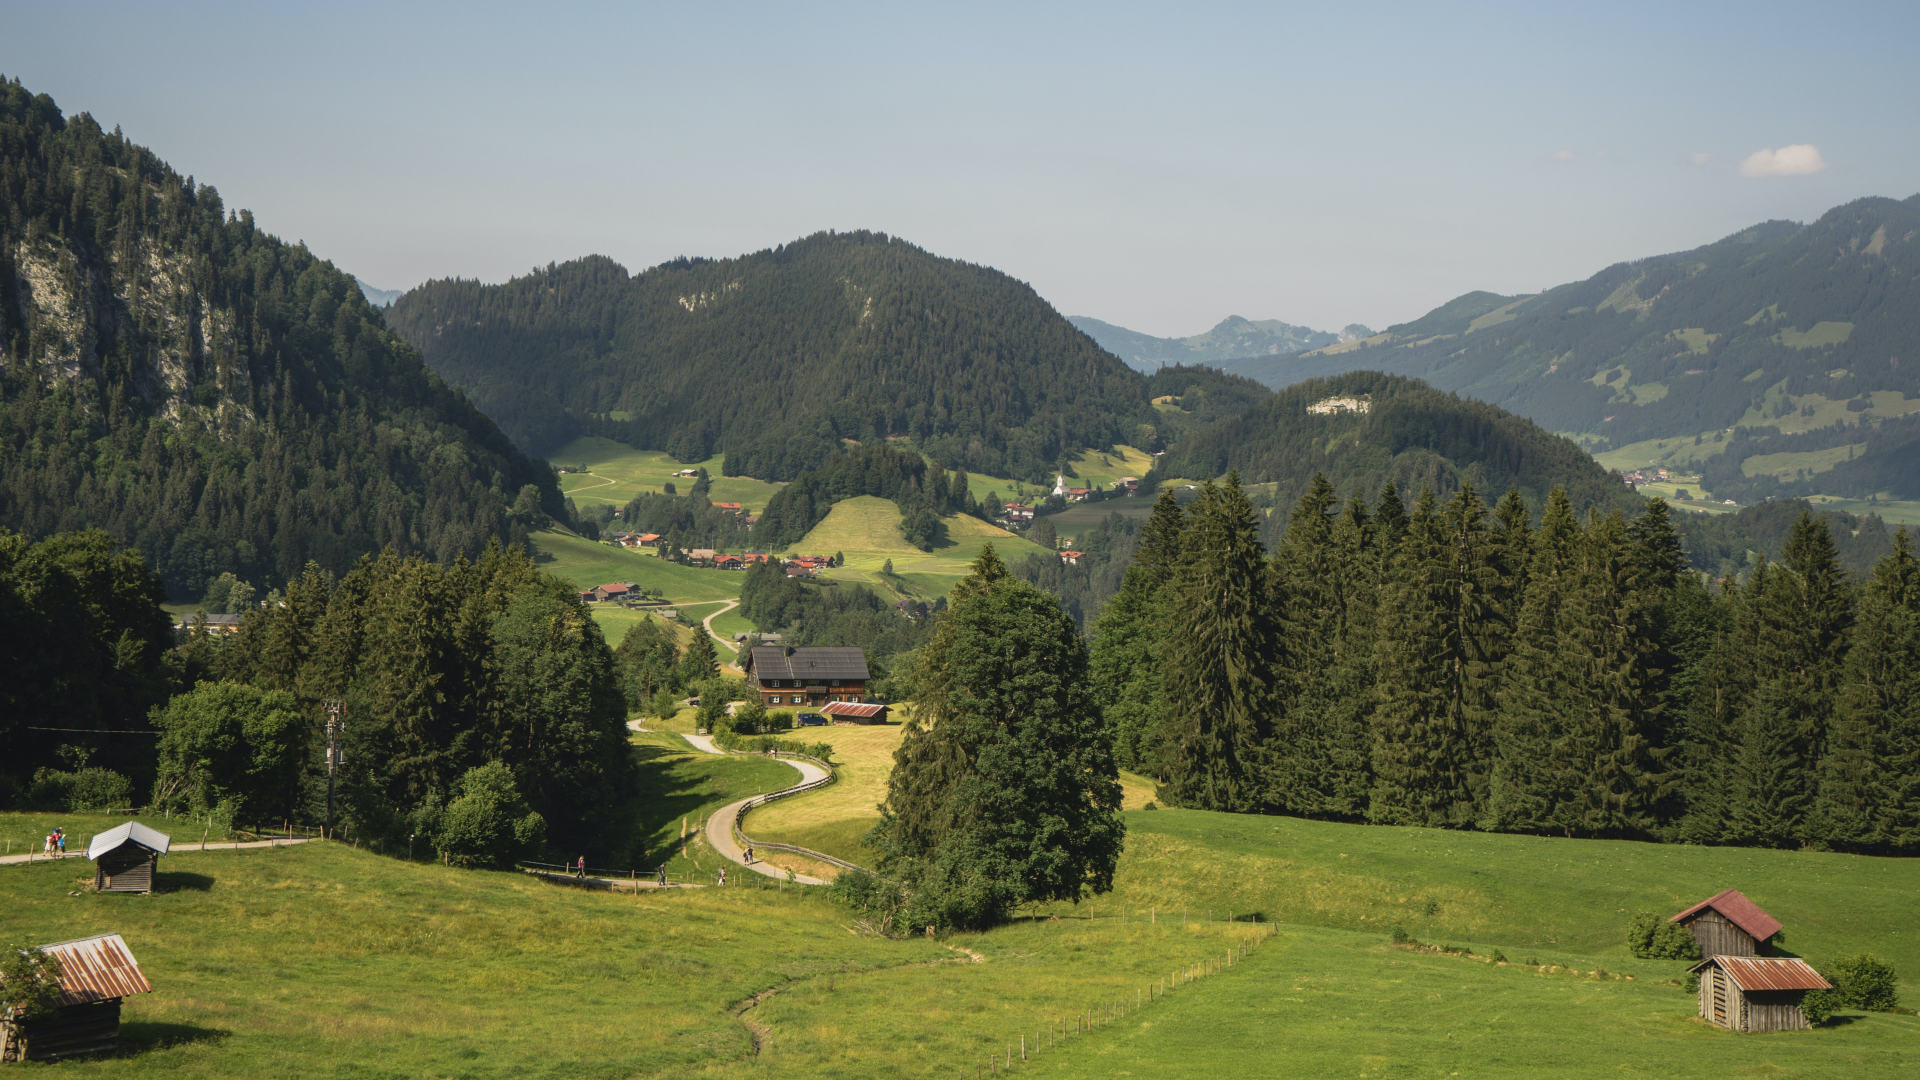 Custom Travel Planner Network=Germany-Oberstdorf